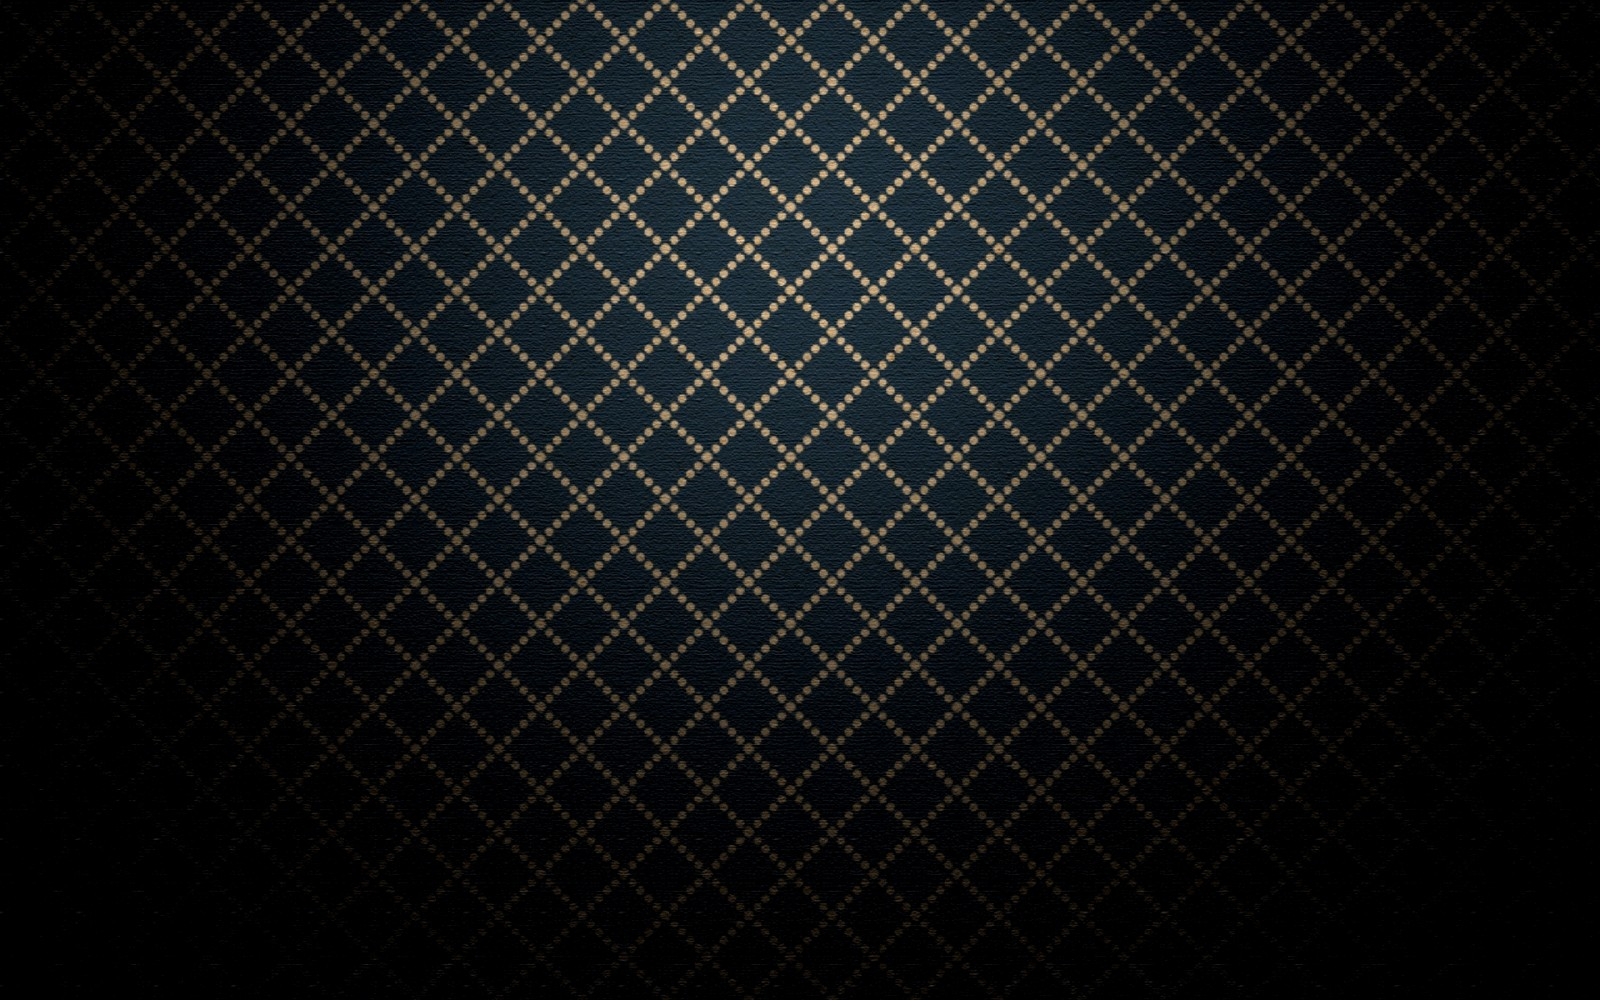 Texture background black glow hd pictures texture background forjpg 1600x1000